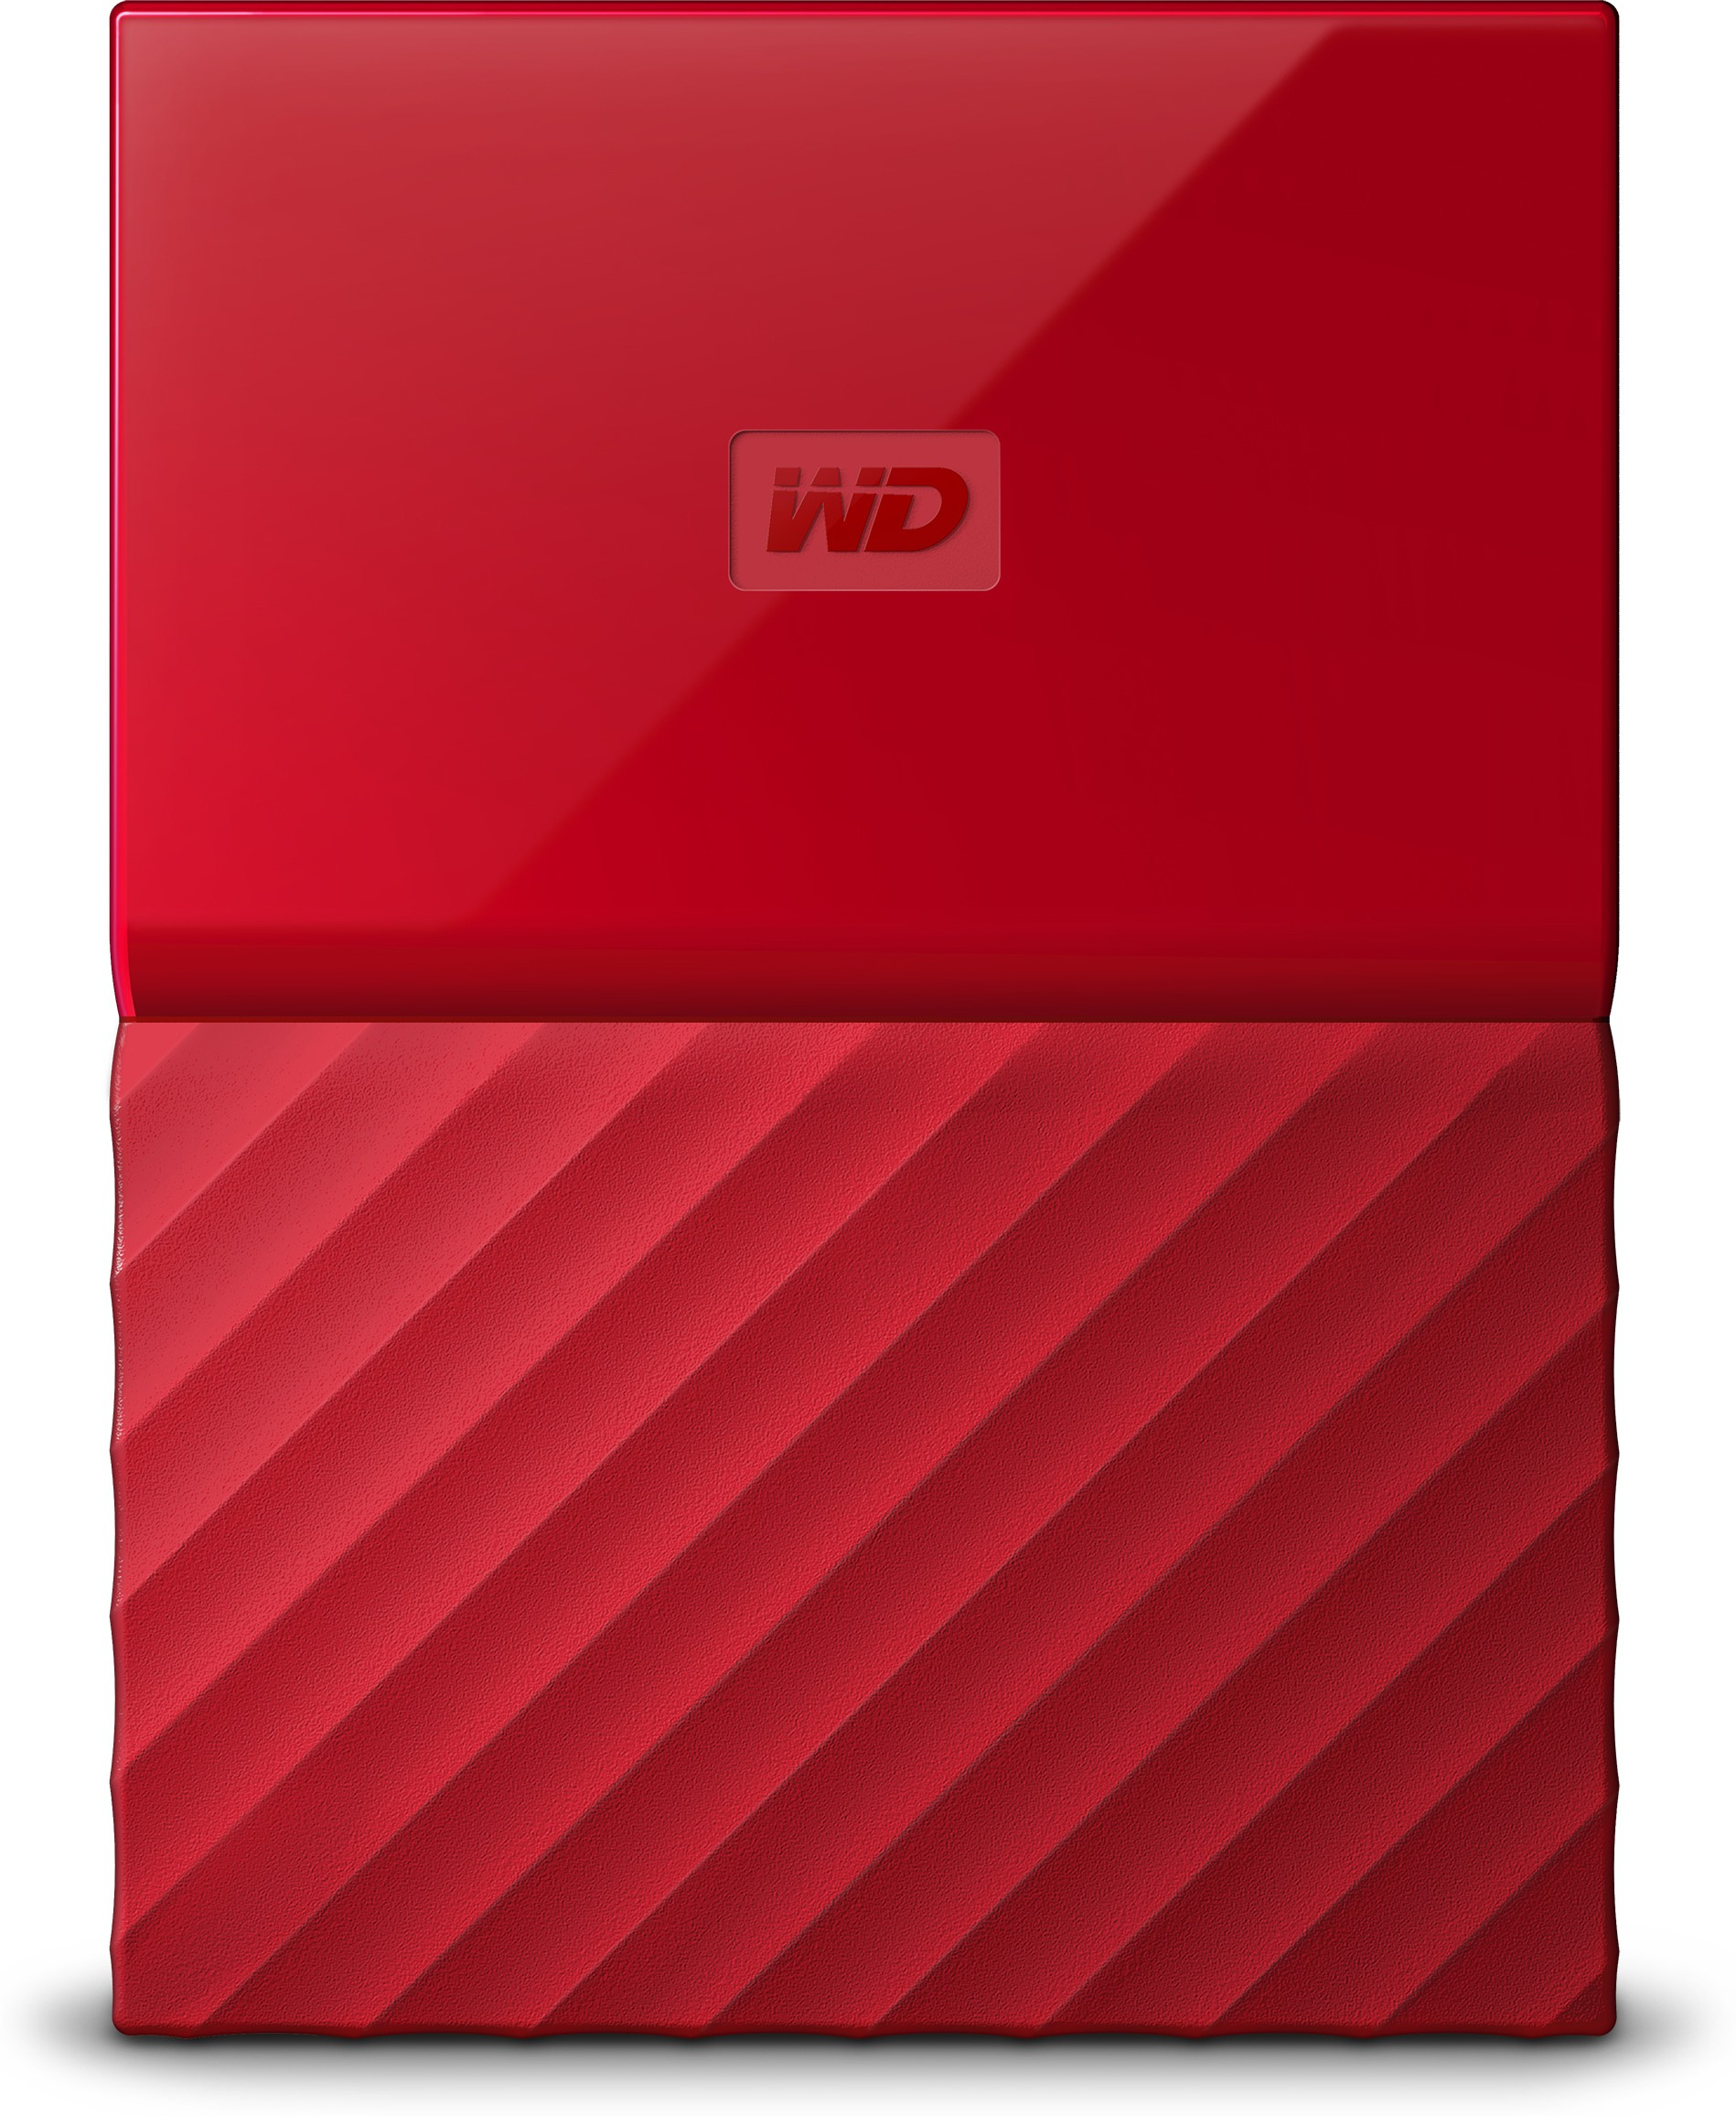 WD My Passport 1 TB Wired External Hard Disk Drive(Red)   Computer Storage  (WD)